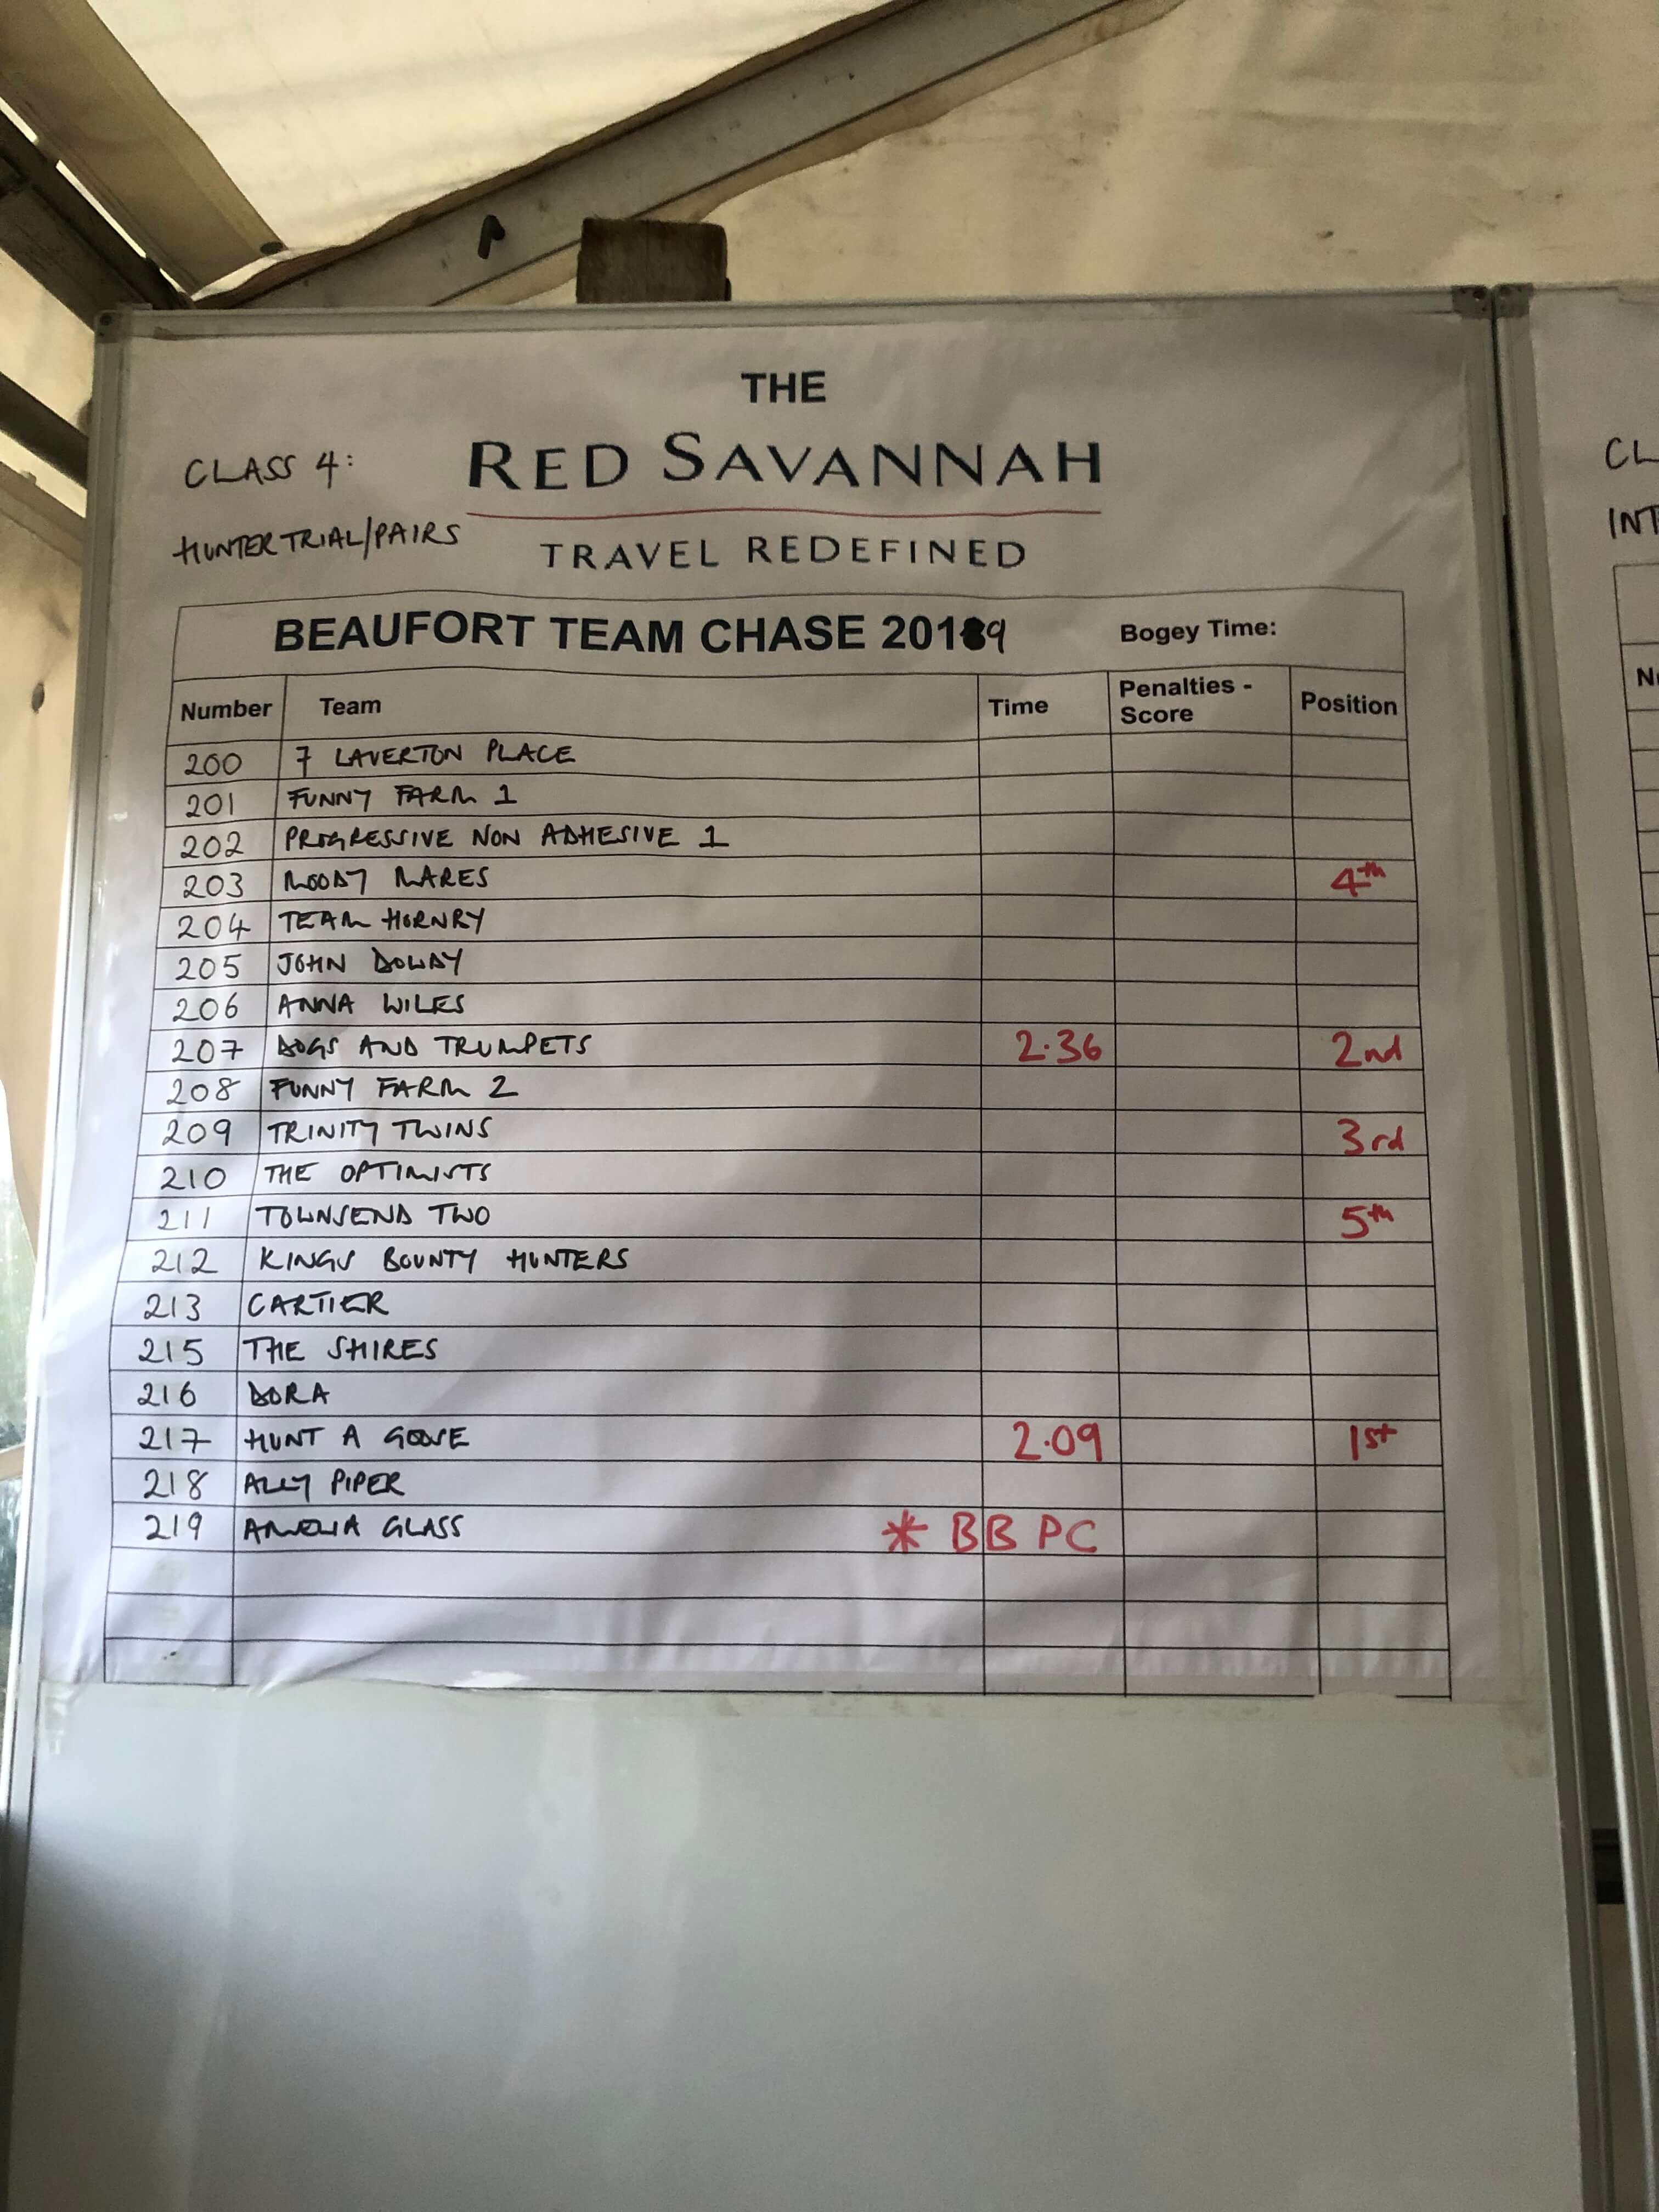 Beaufort Team Chase Pairs Results